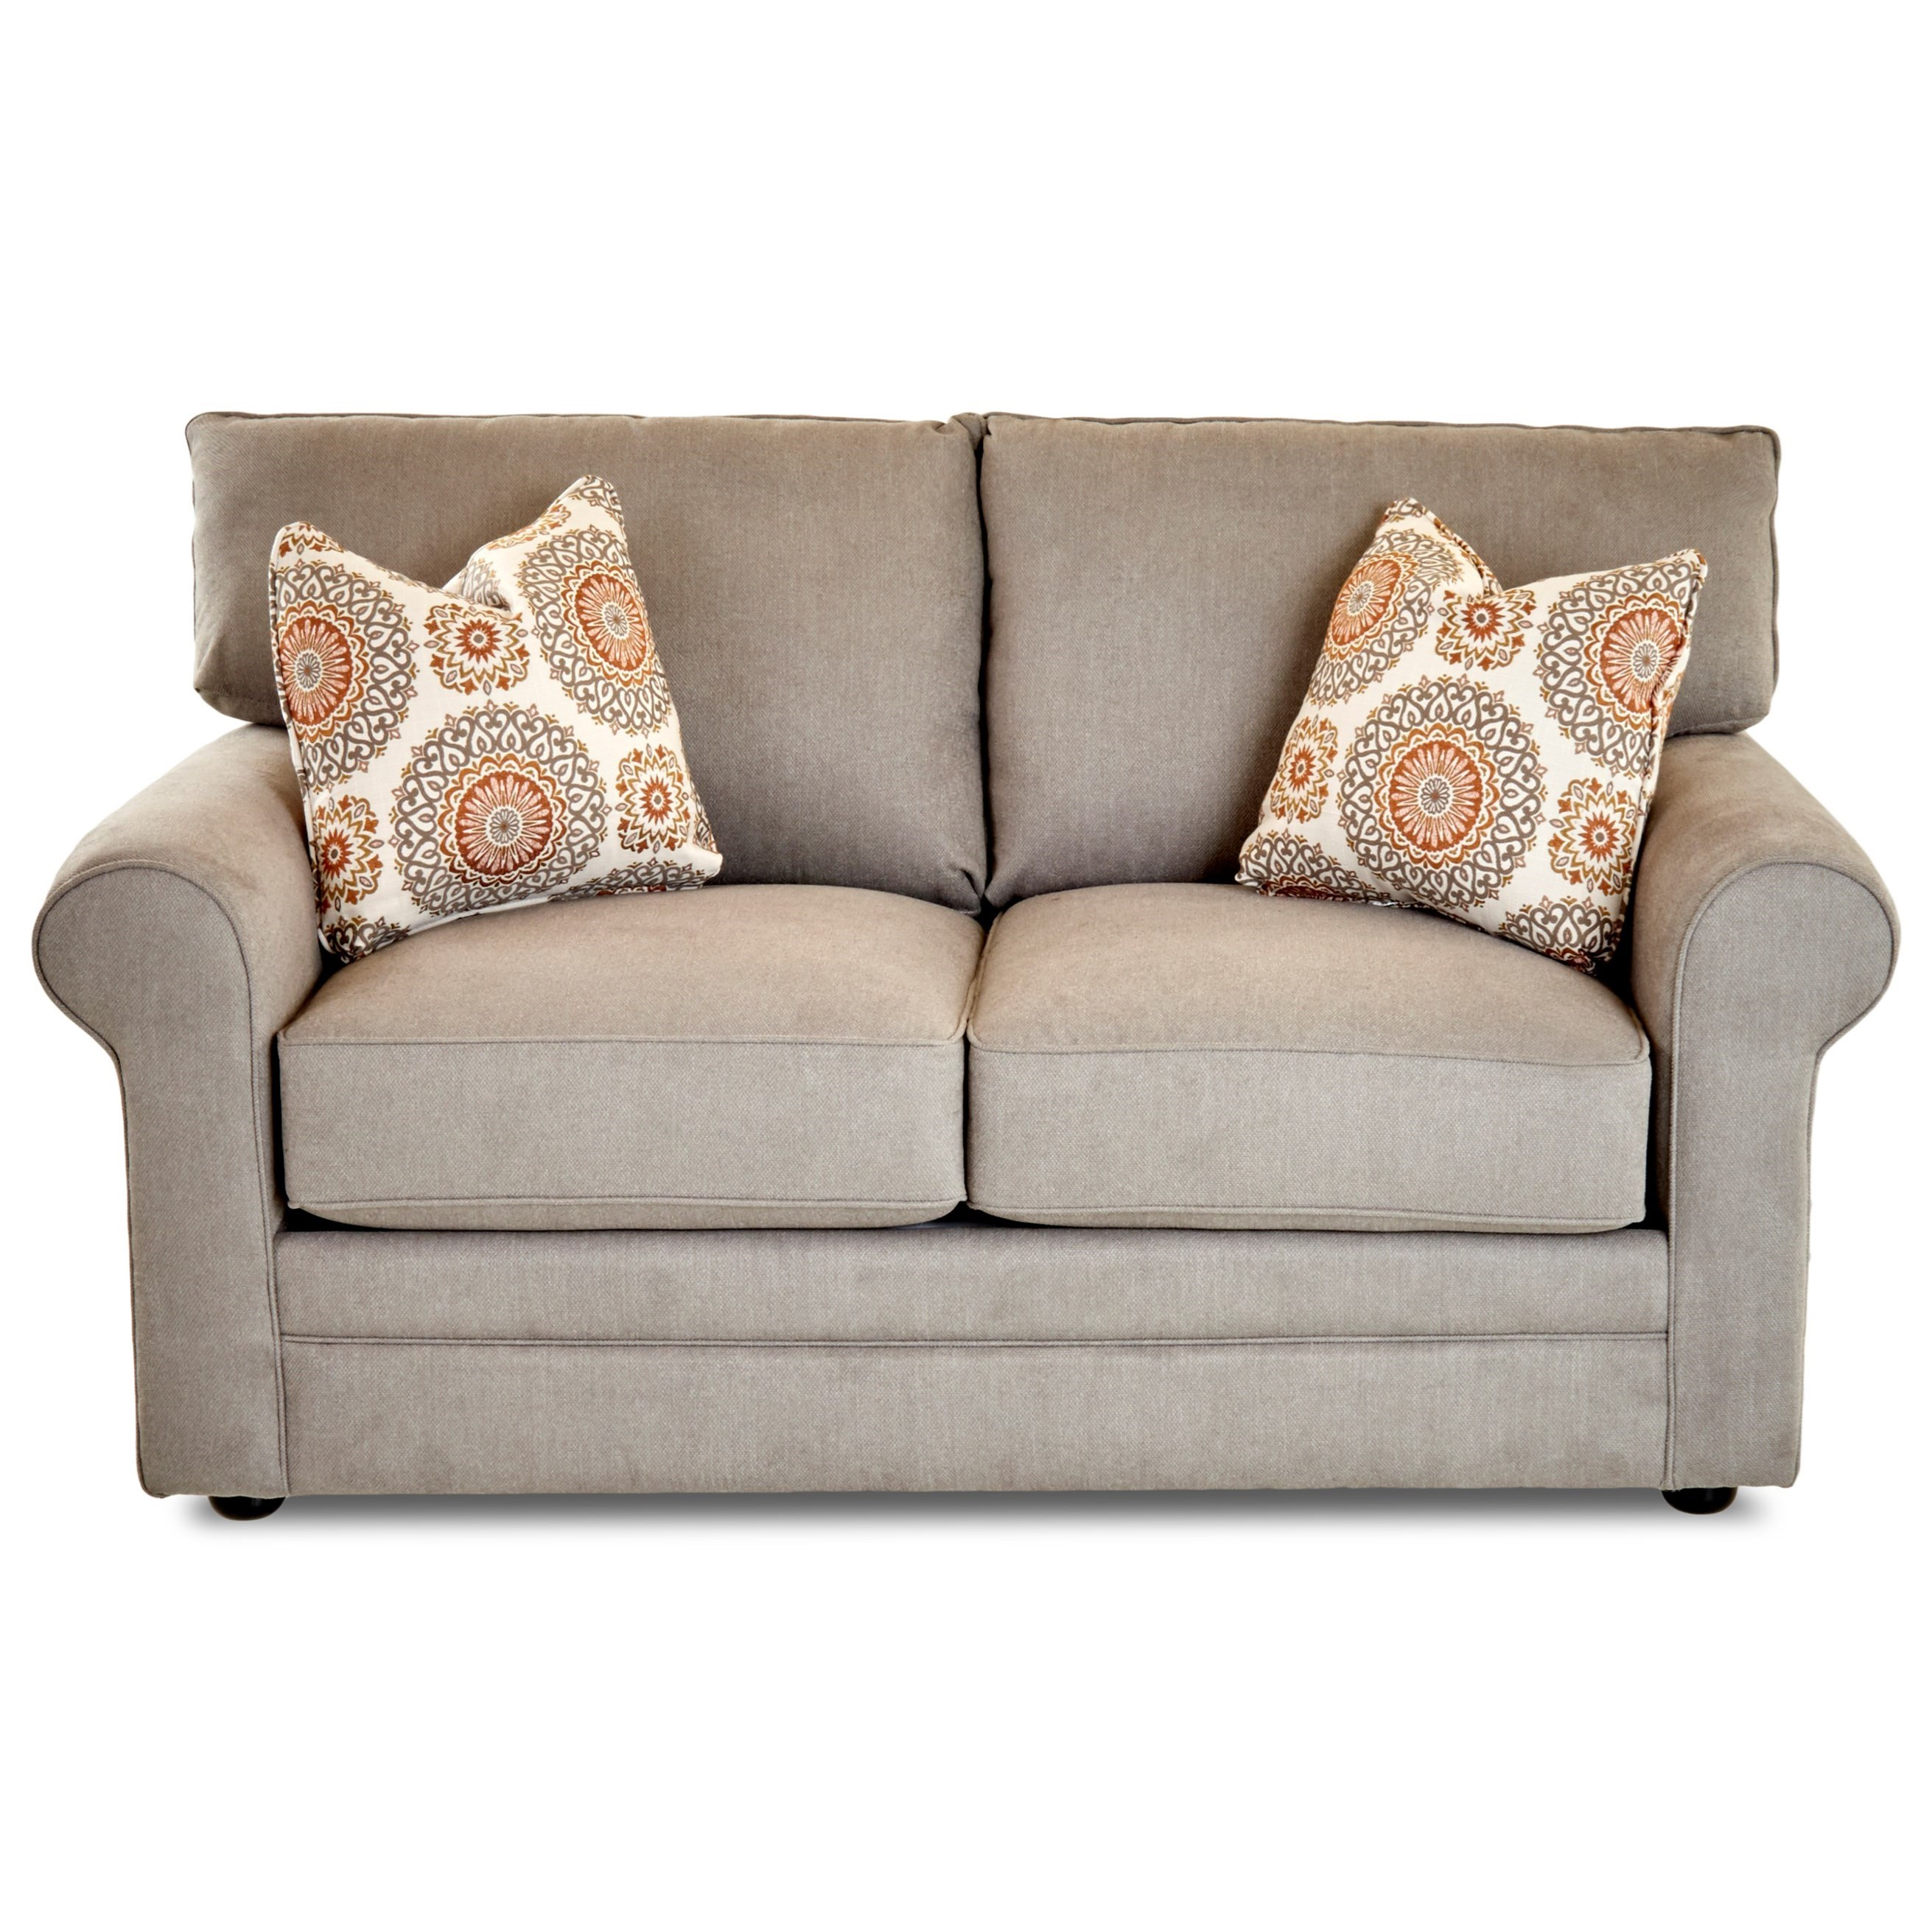 Comfy Loveseat by Klaussner at Lapeer Furniture & Mattress Center